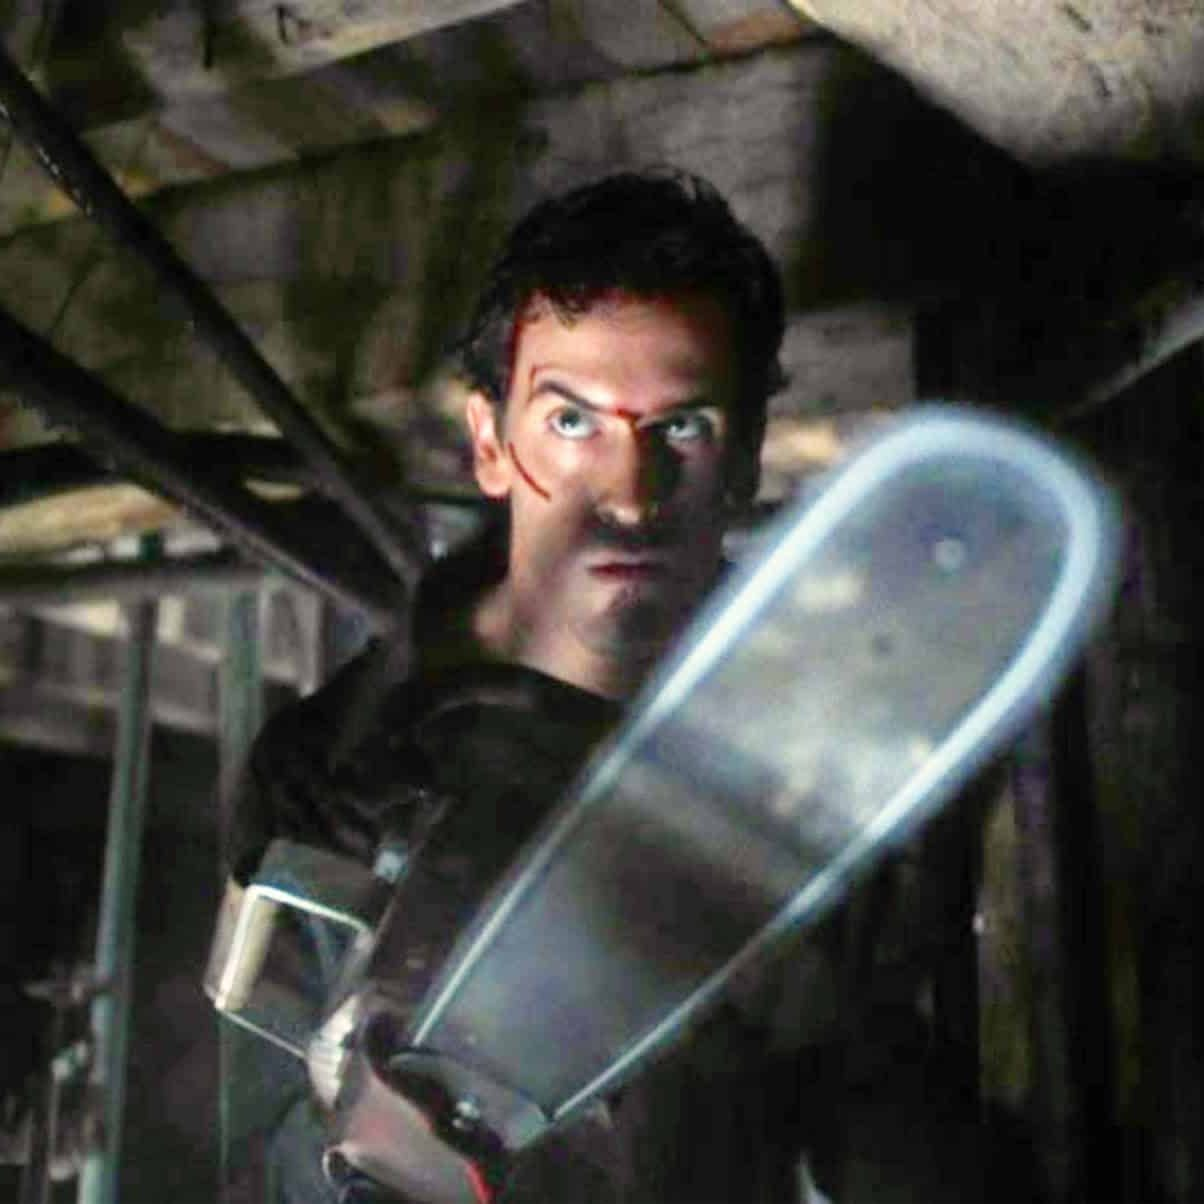 evil dead 22 e1571835506302 Bruce Campbell's Plastic Surgery and 19 Other Things You Didn't Know About Army of Darkness